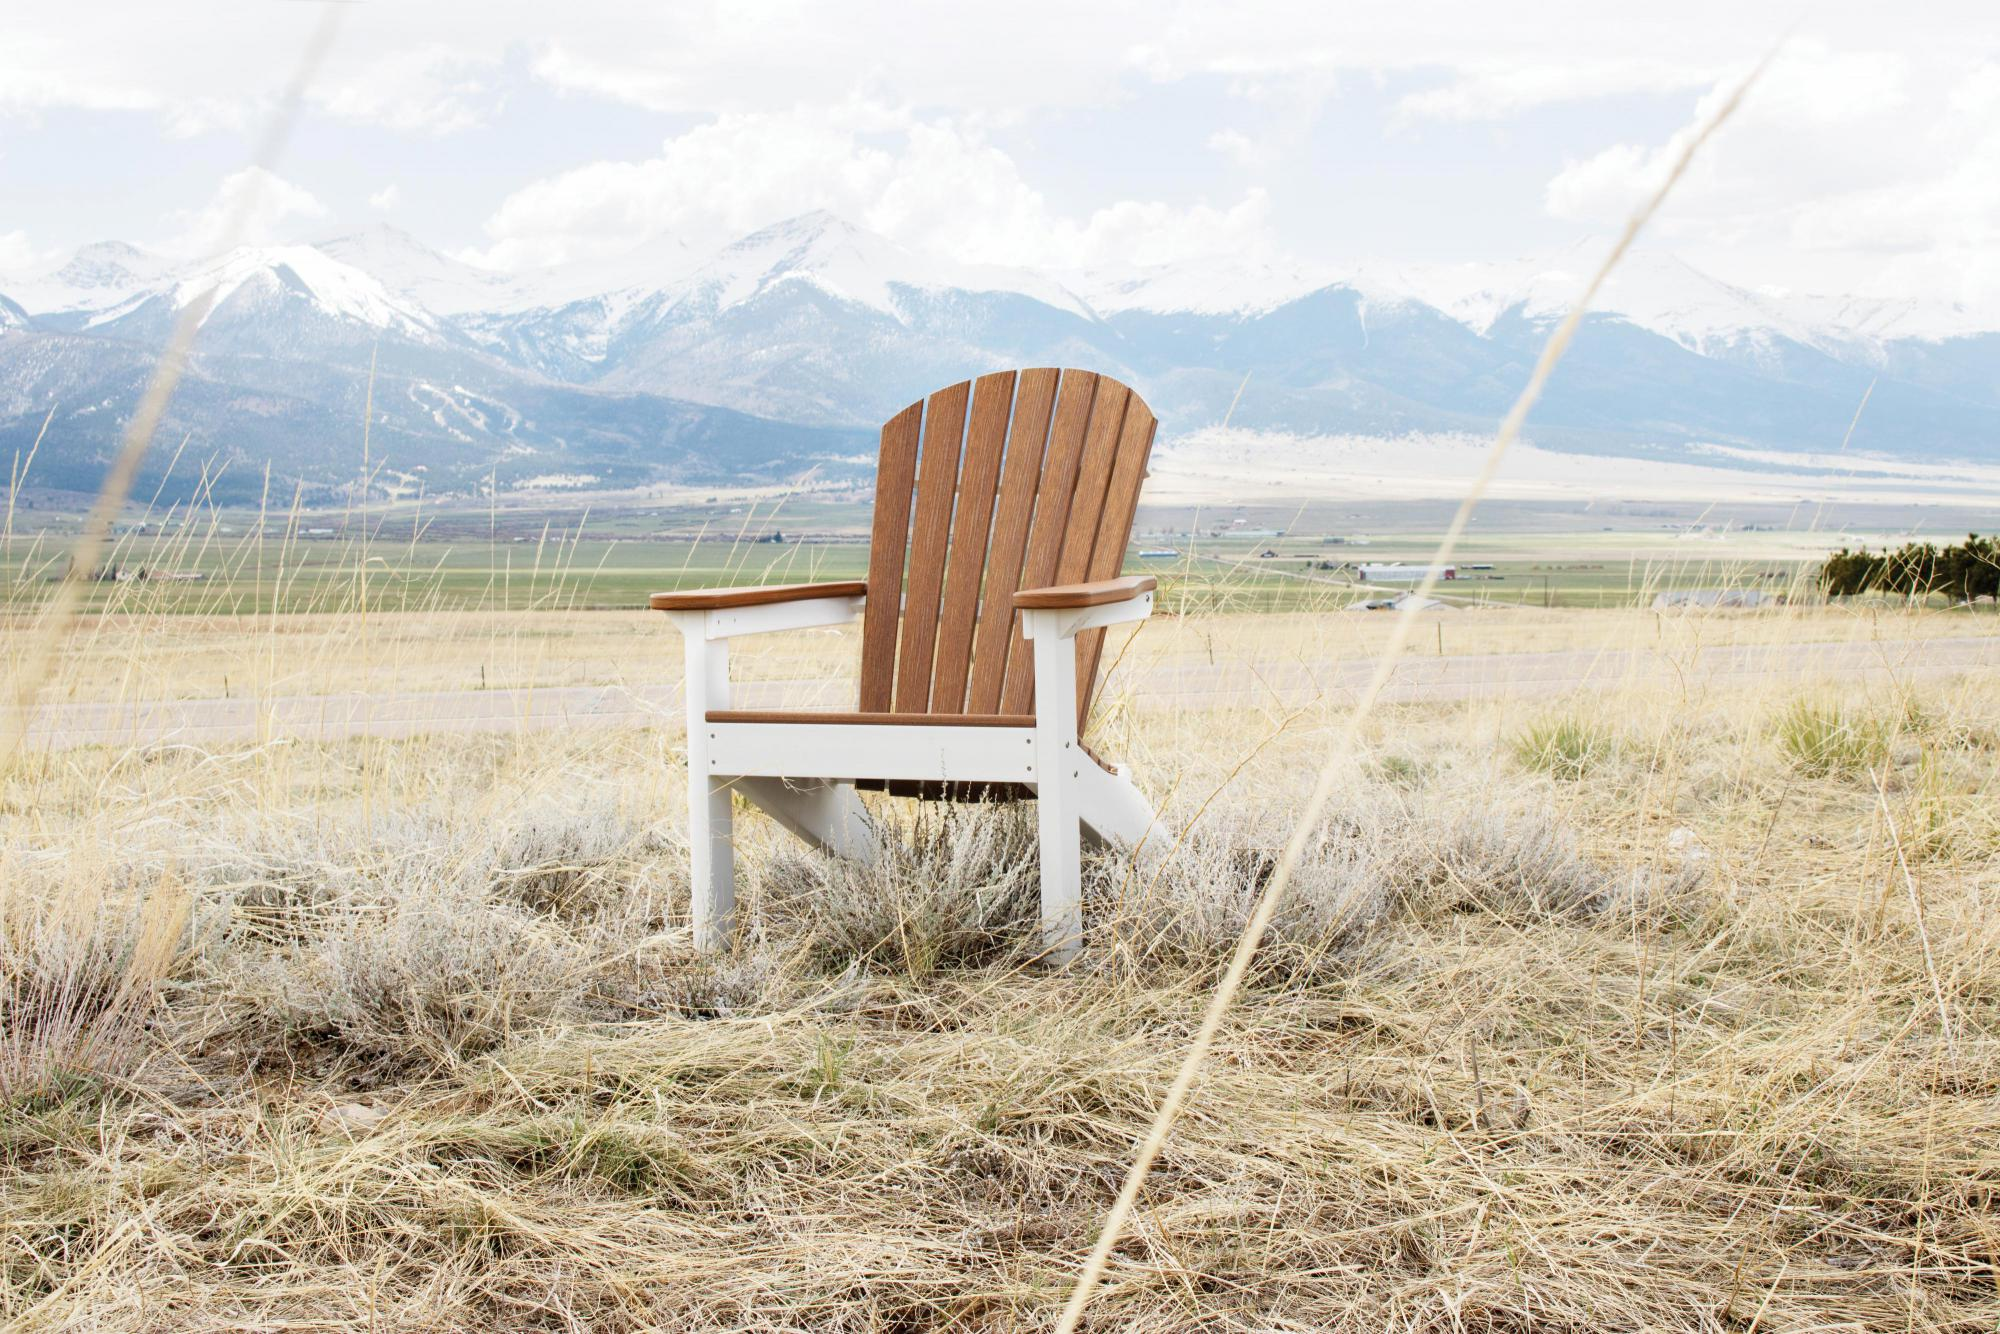 Adirondack chair out in country